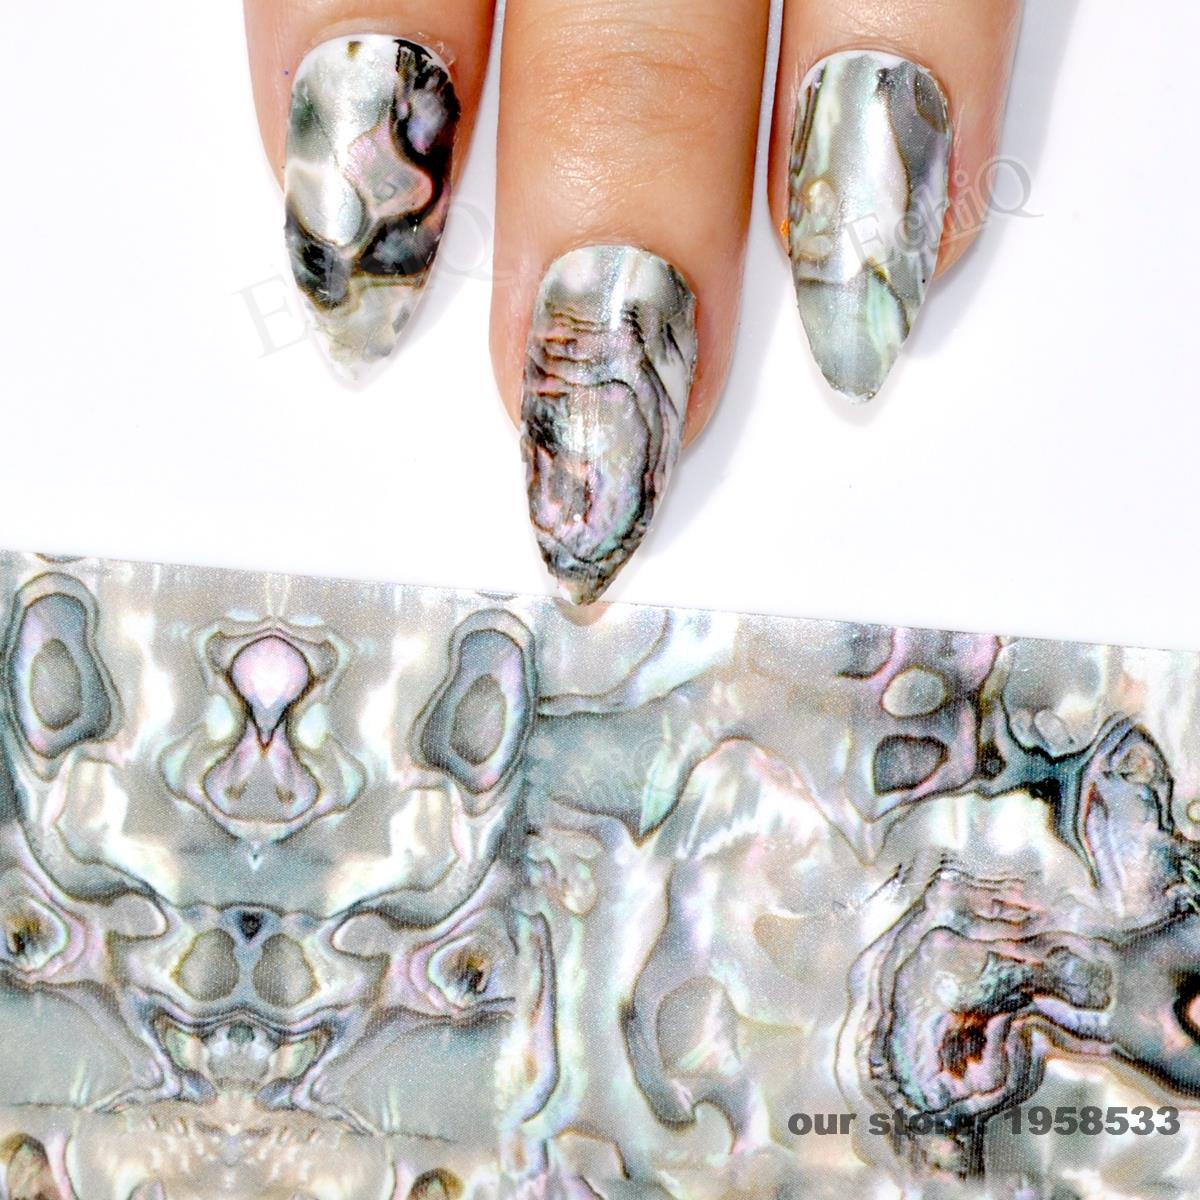 Online Shop for marble nail design Wholesale with Best Price